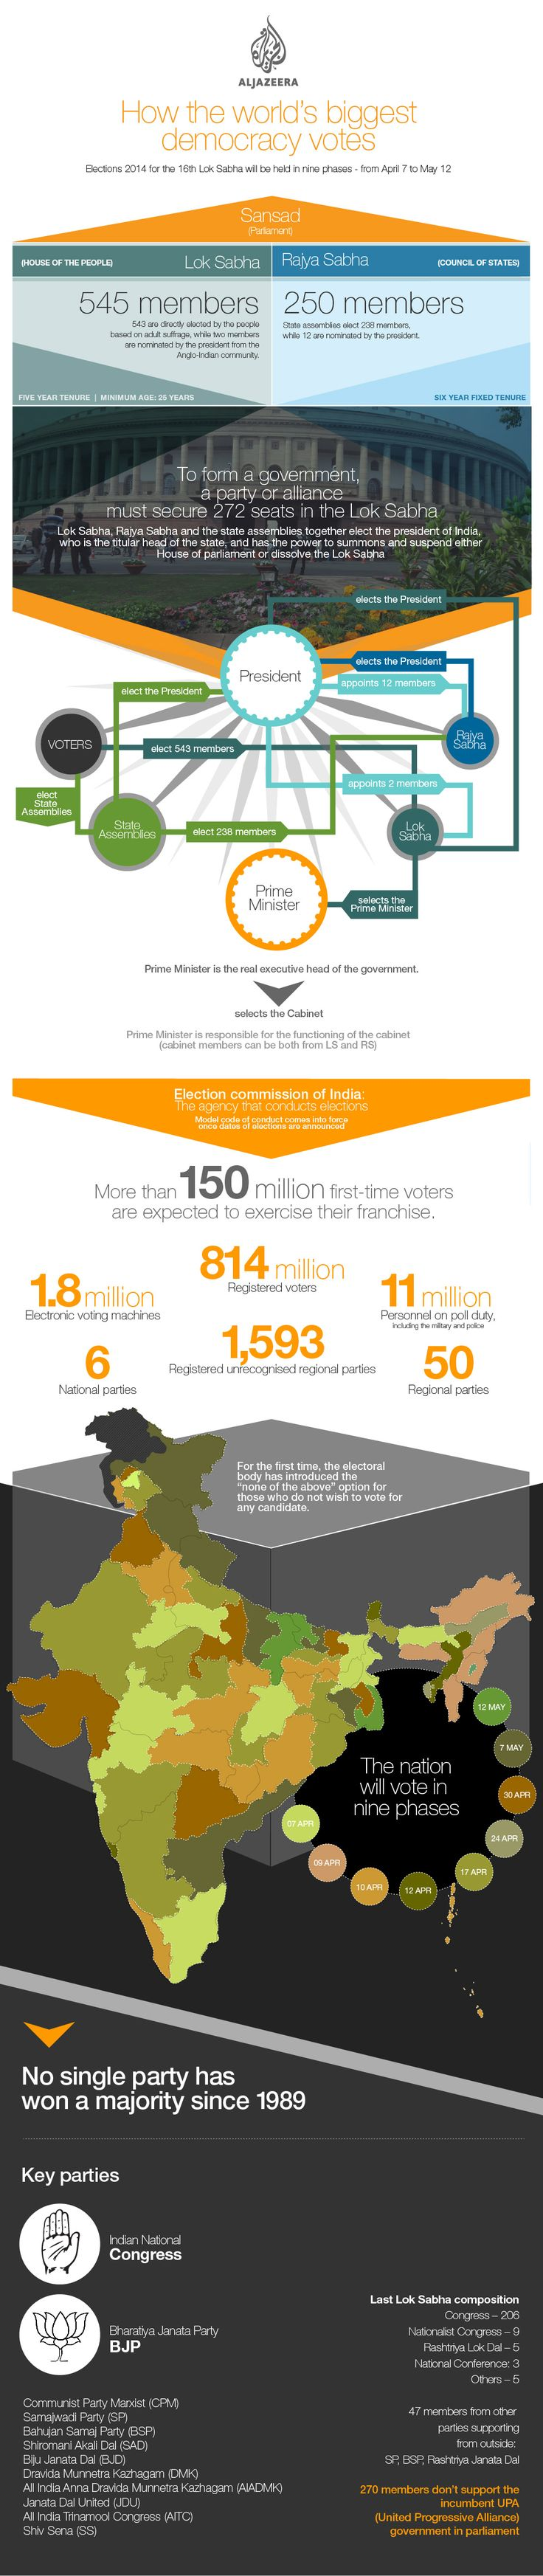 Infographic: How India forms a government - Interactive - Al Jazeera English | India, the world's biggest democracy, is having their elections - a process that will take roughly 6 weeks. An explanation of how this is accomplished on such a massive scale.